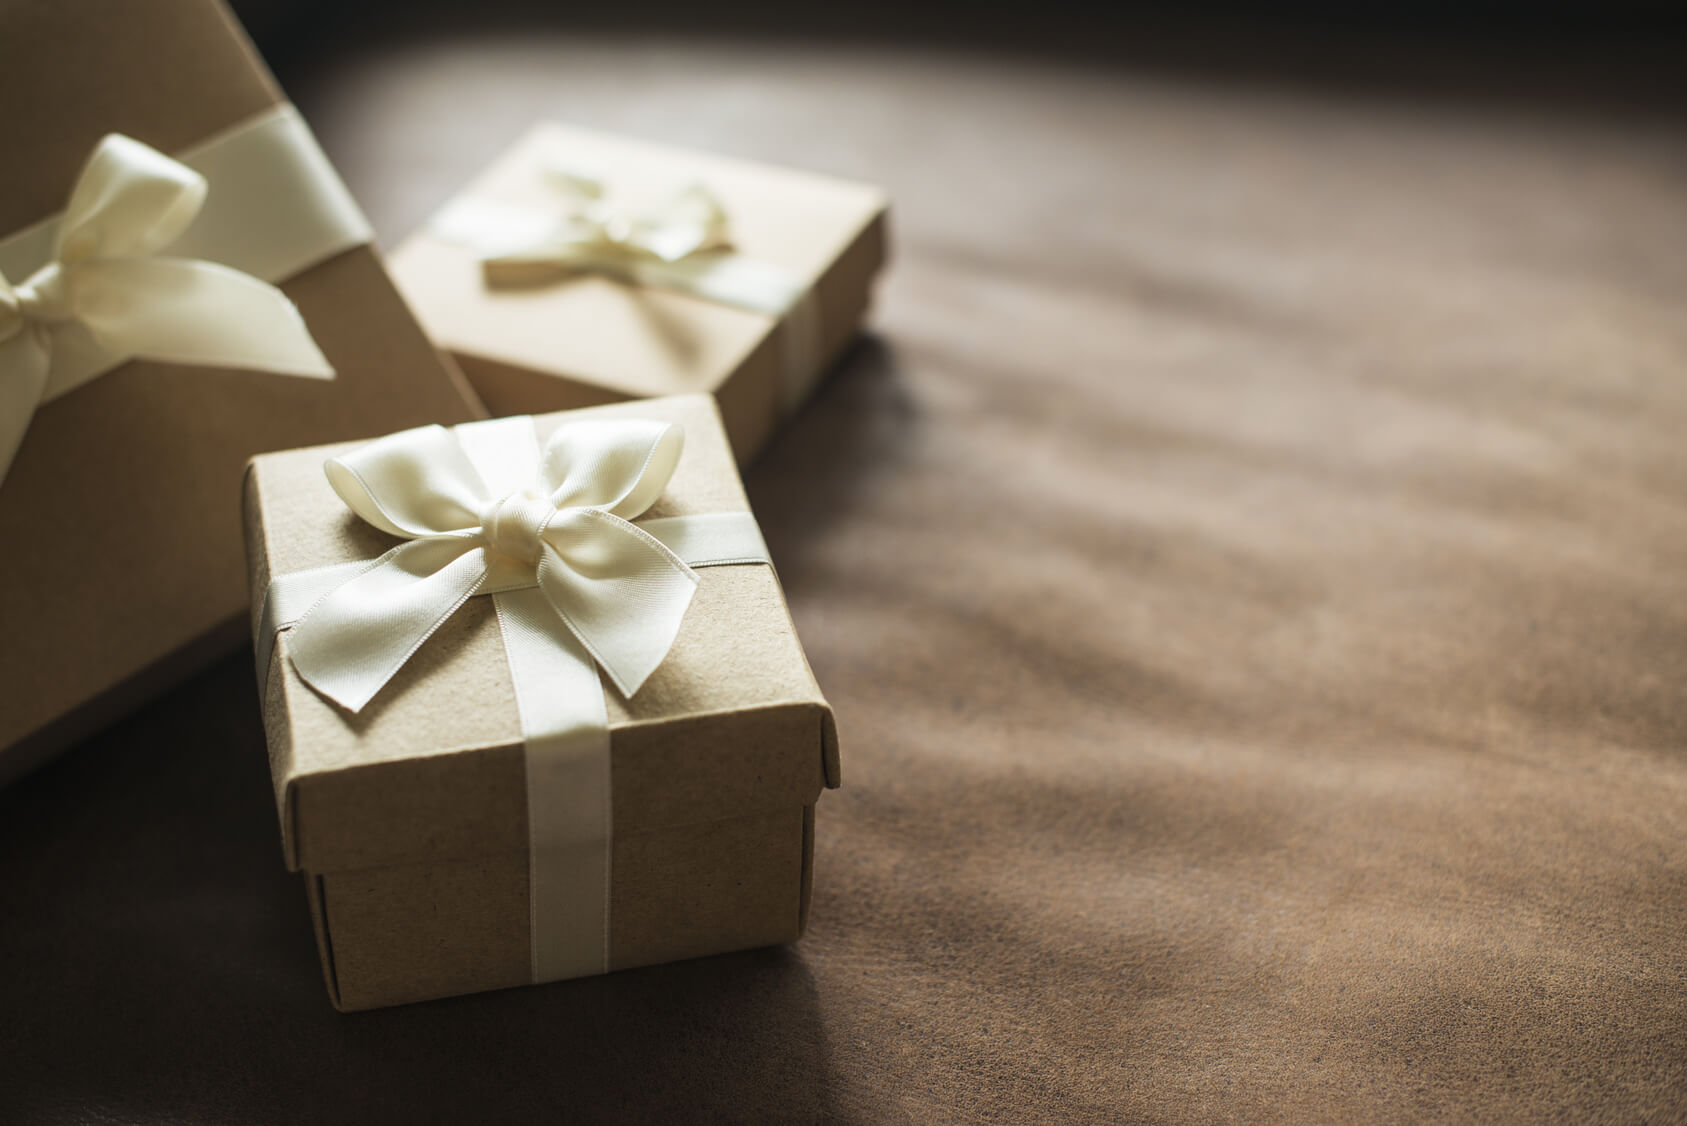 Gifting Property To Family Member >> What You Should Know About Gifting Real Estate Lawdepot Blog